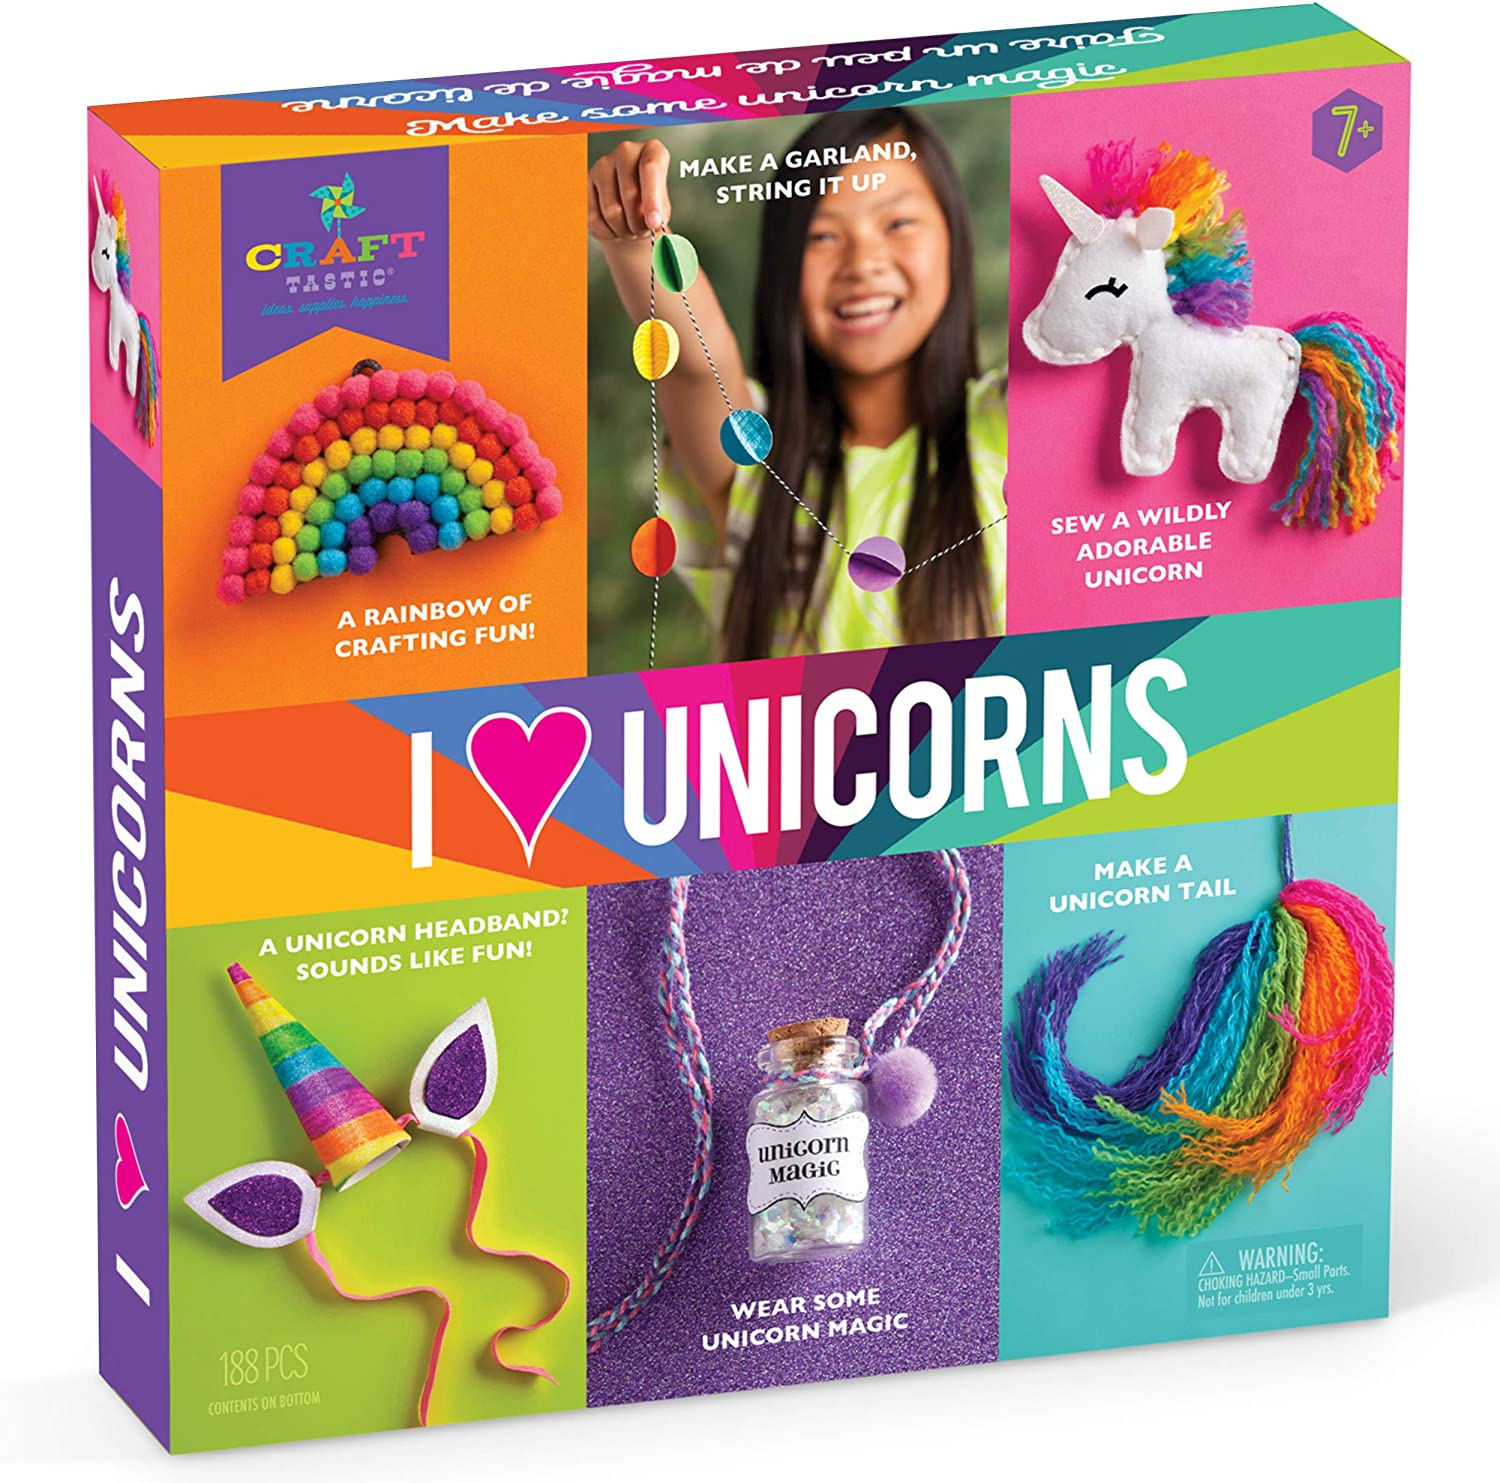 unicorn-gifts-for-girls-craft-kit